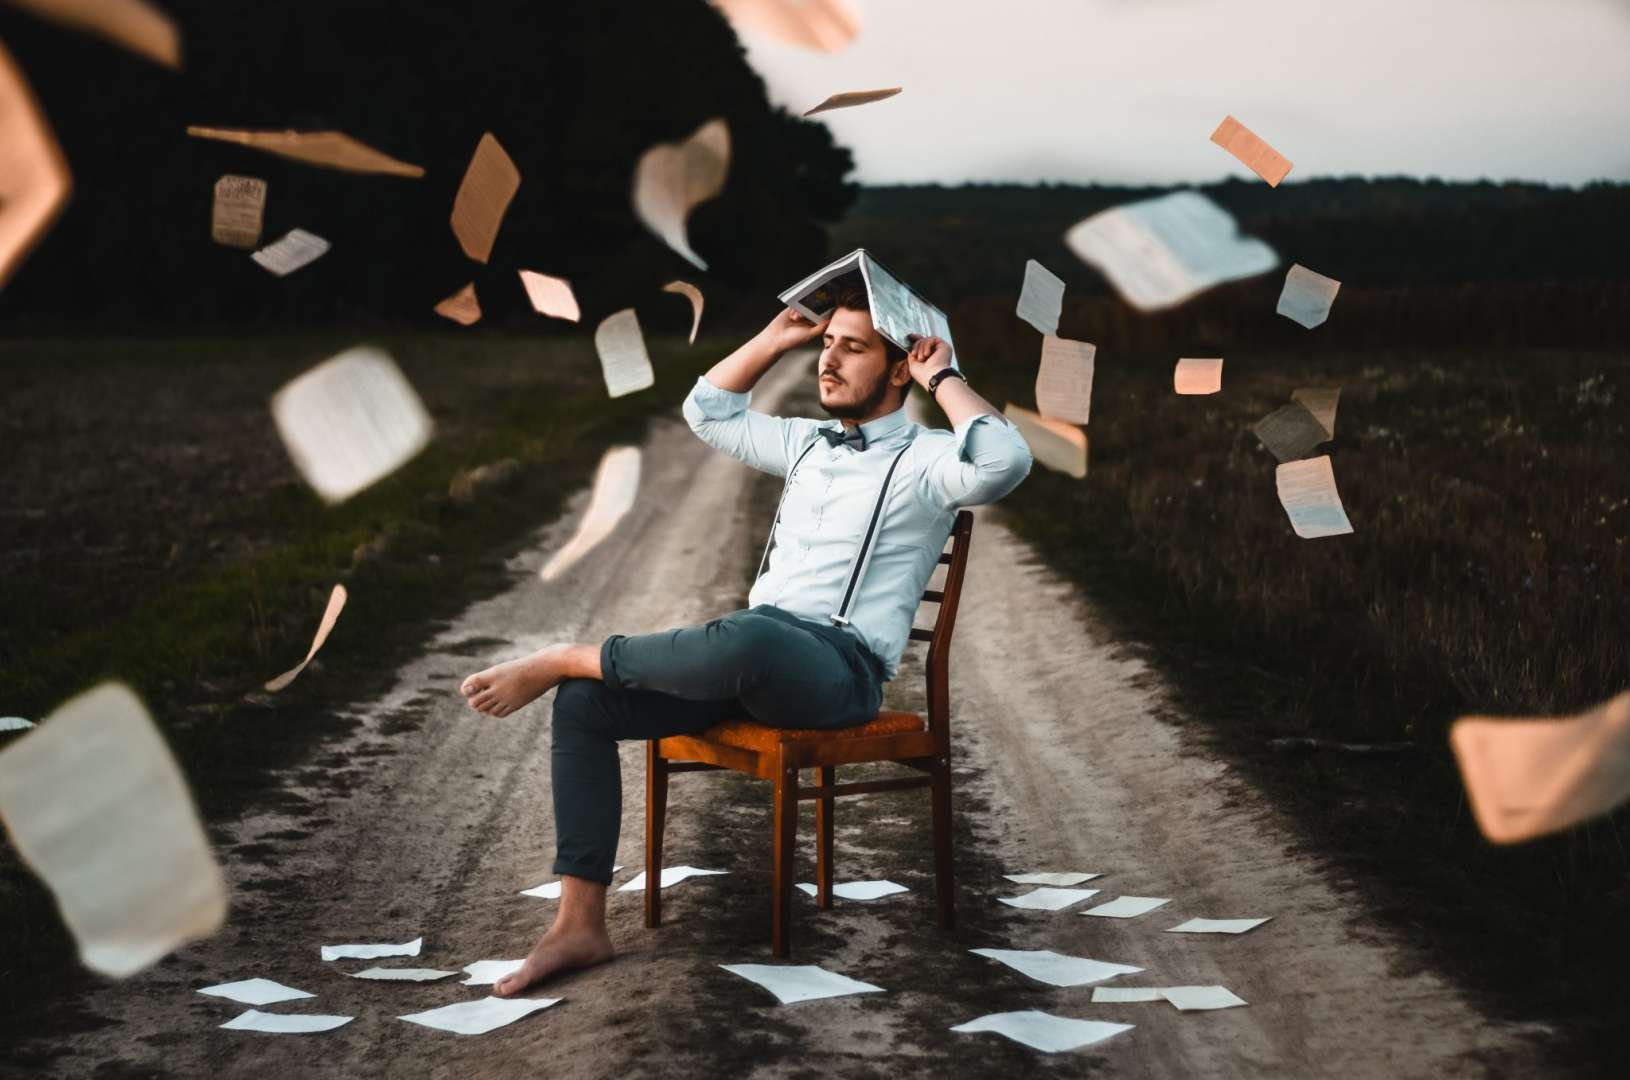 Man Surrounded By Receipts